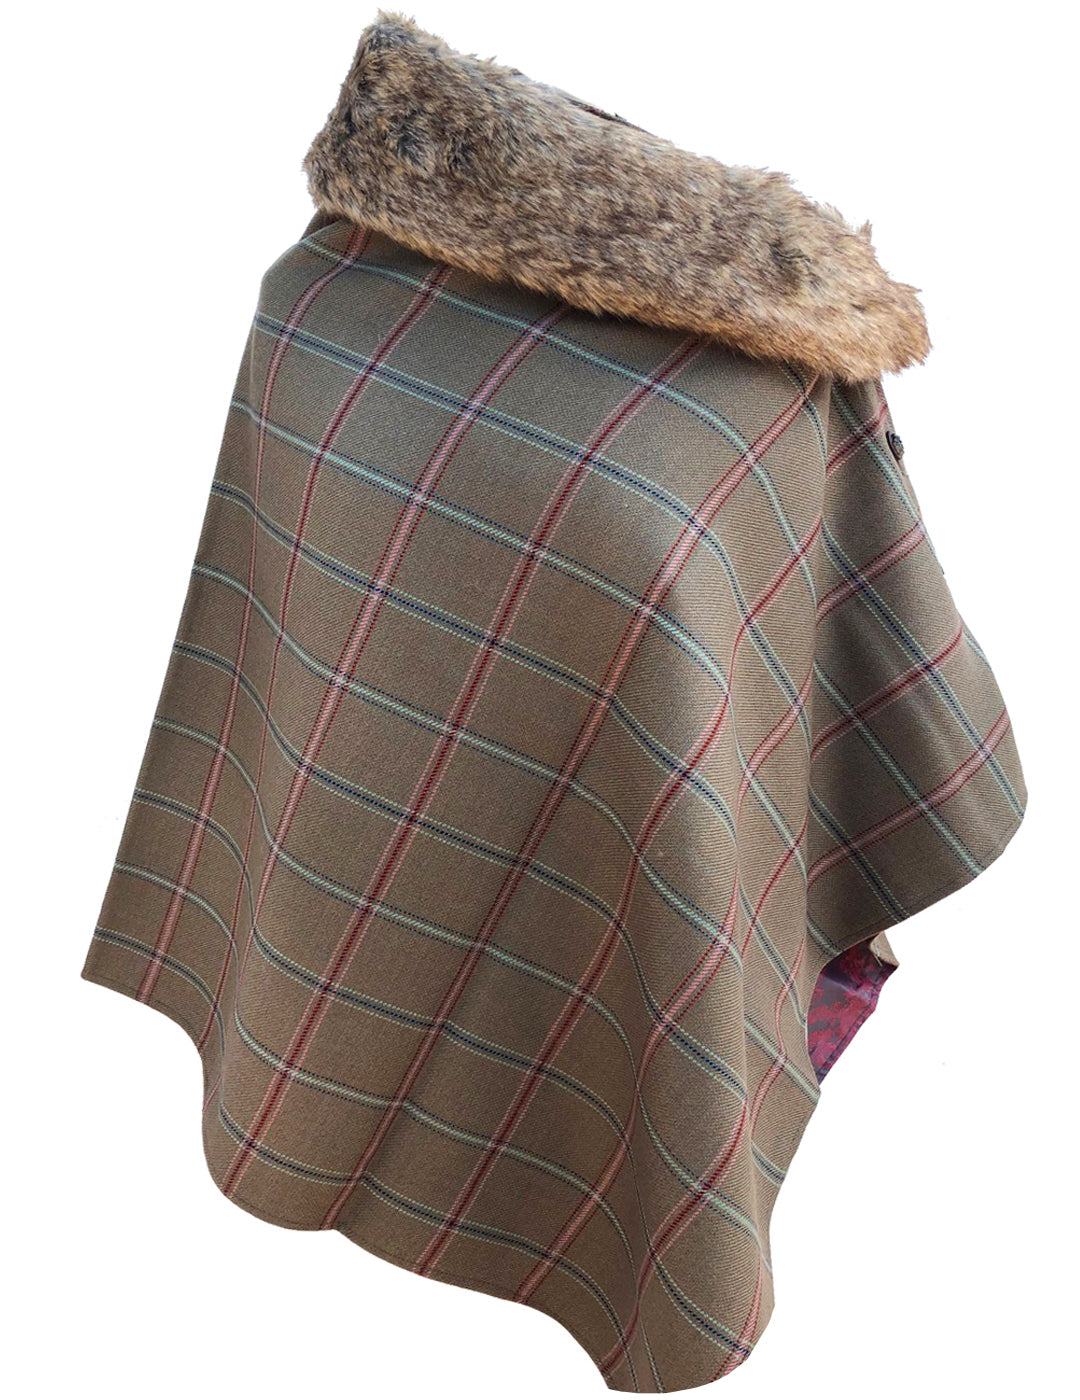 Ladies Tweed Poncho Cape Wrap 2-Tone Satin Lining & detachable Faux Fur Collar-Pink